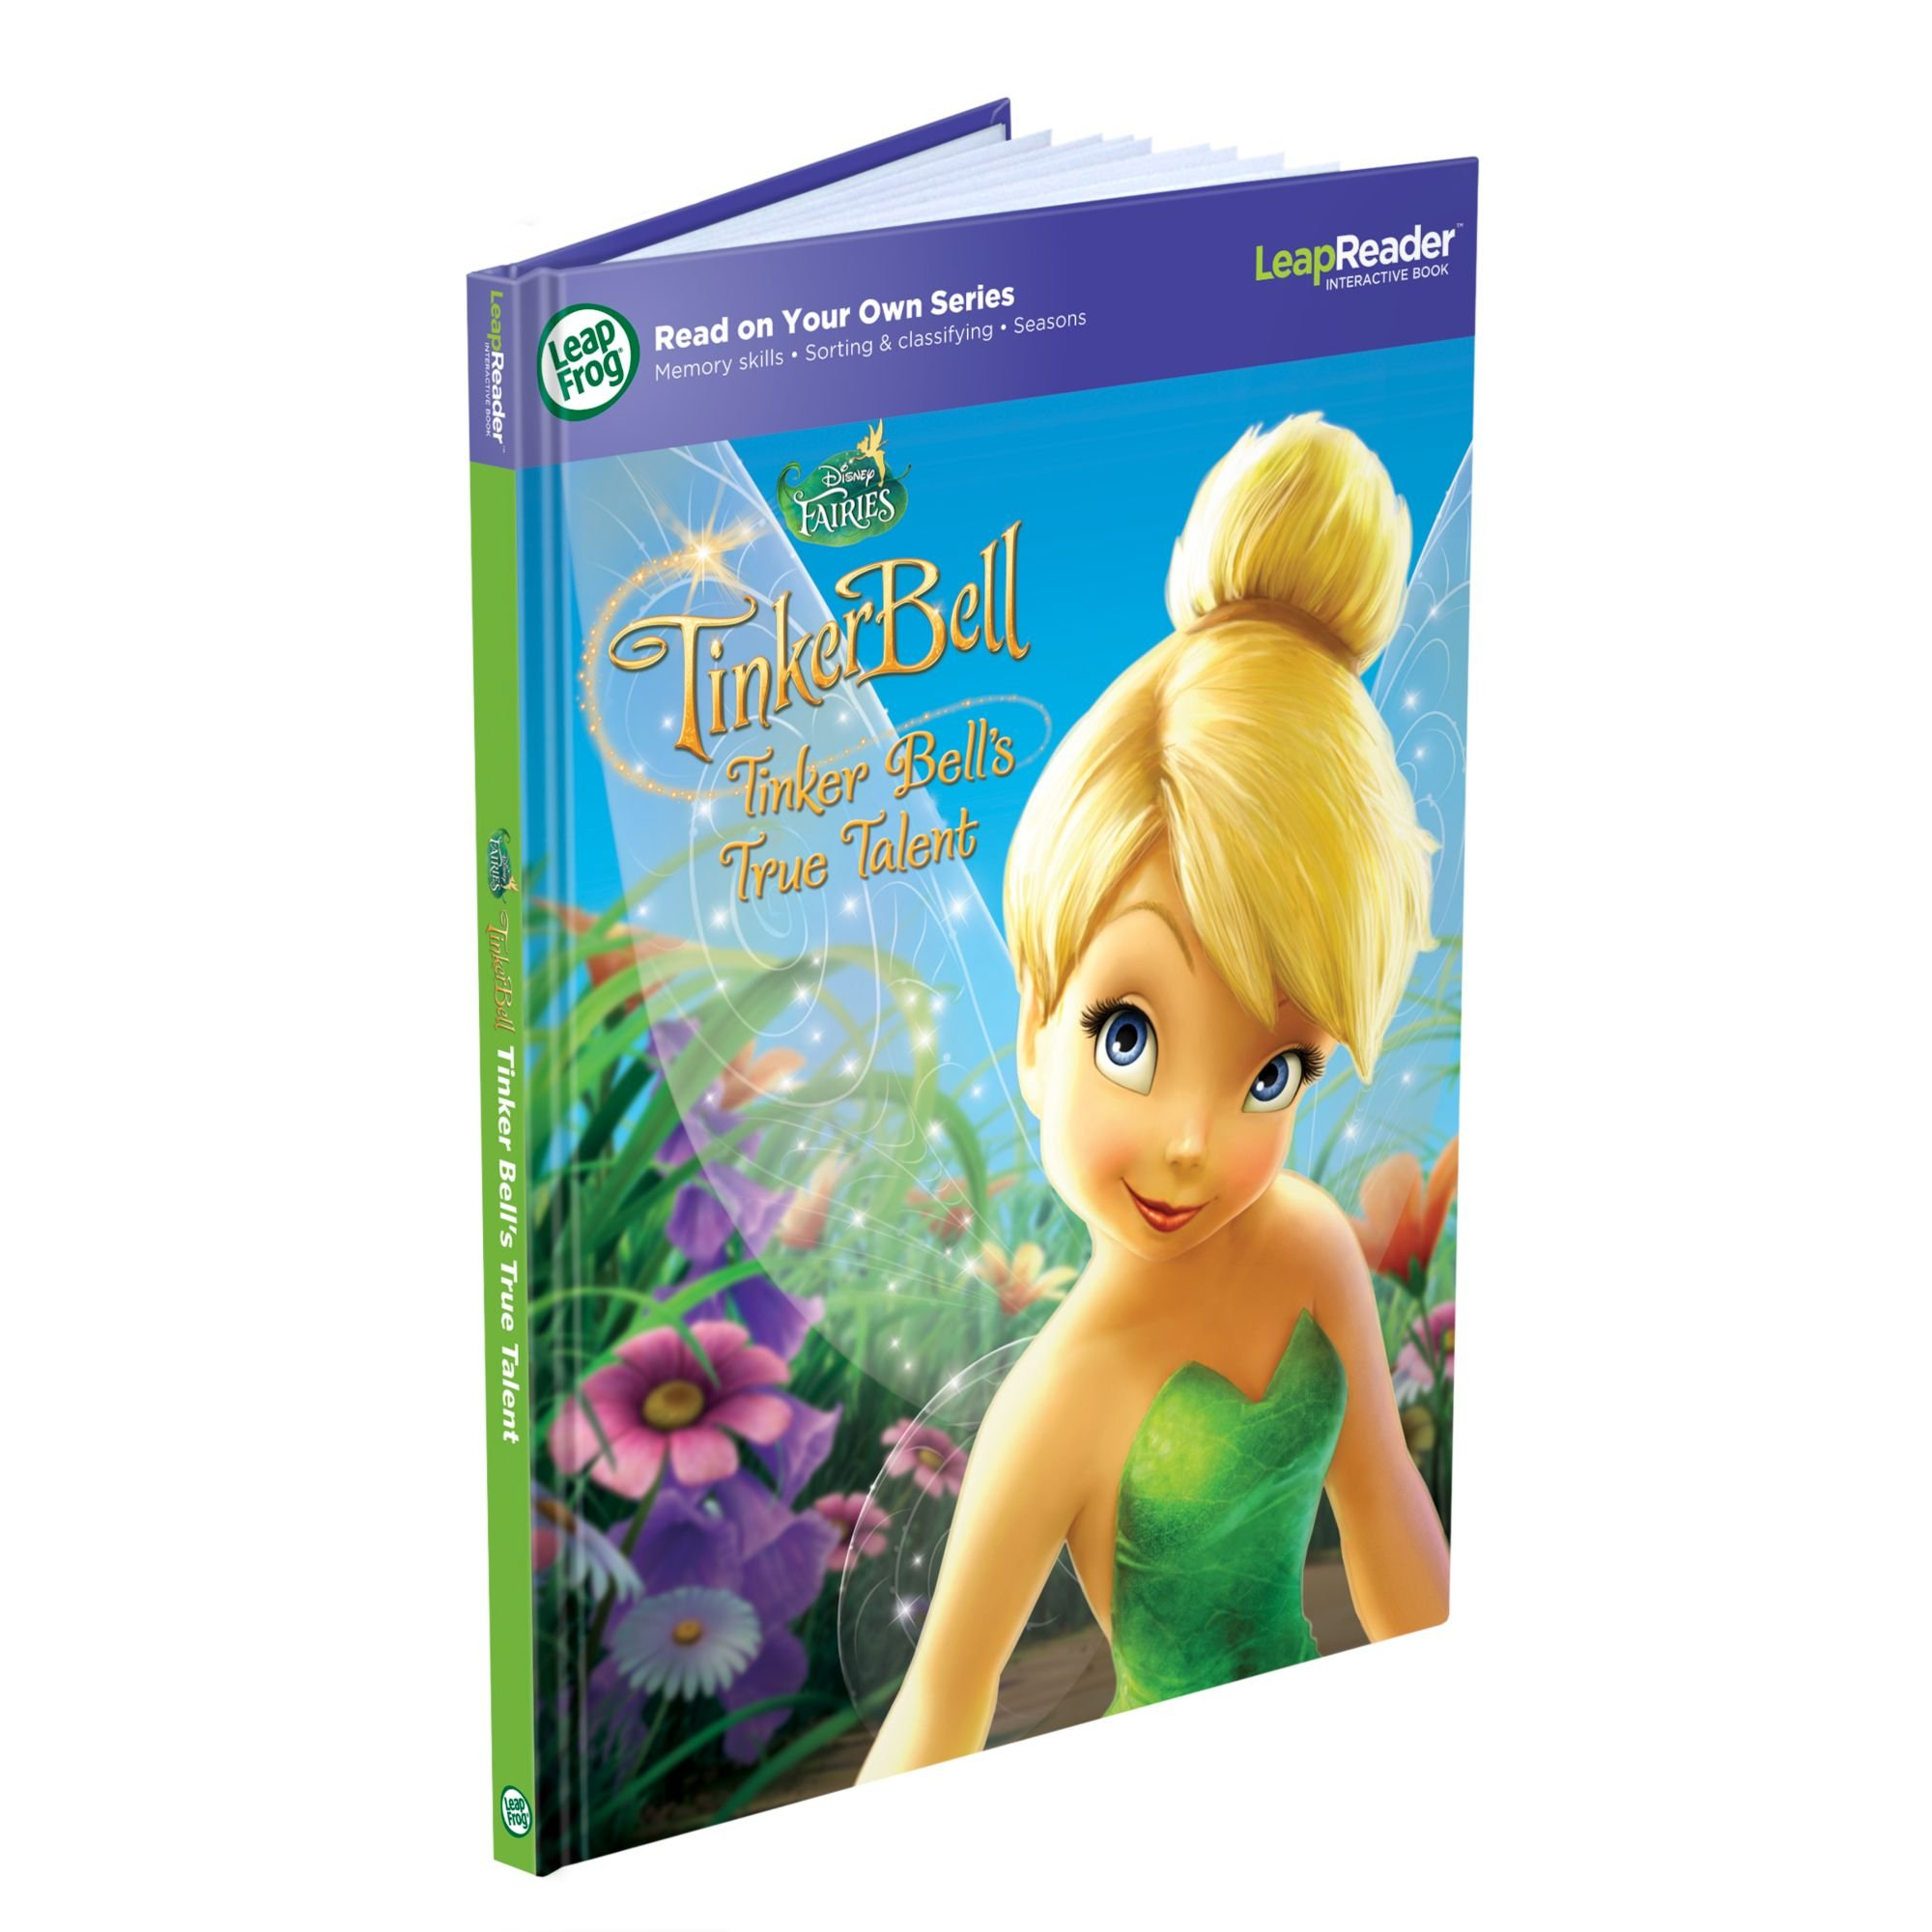 LeapFrog LeapReader Book: Disney Fairies Tinker Bell's True Talent (works with Tag) by LeapFrog